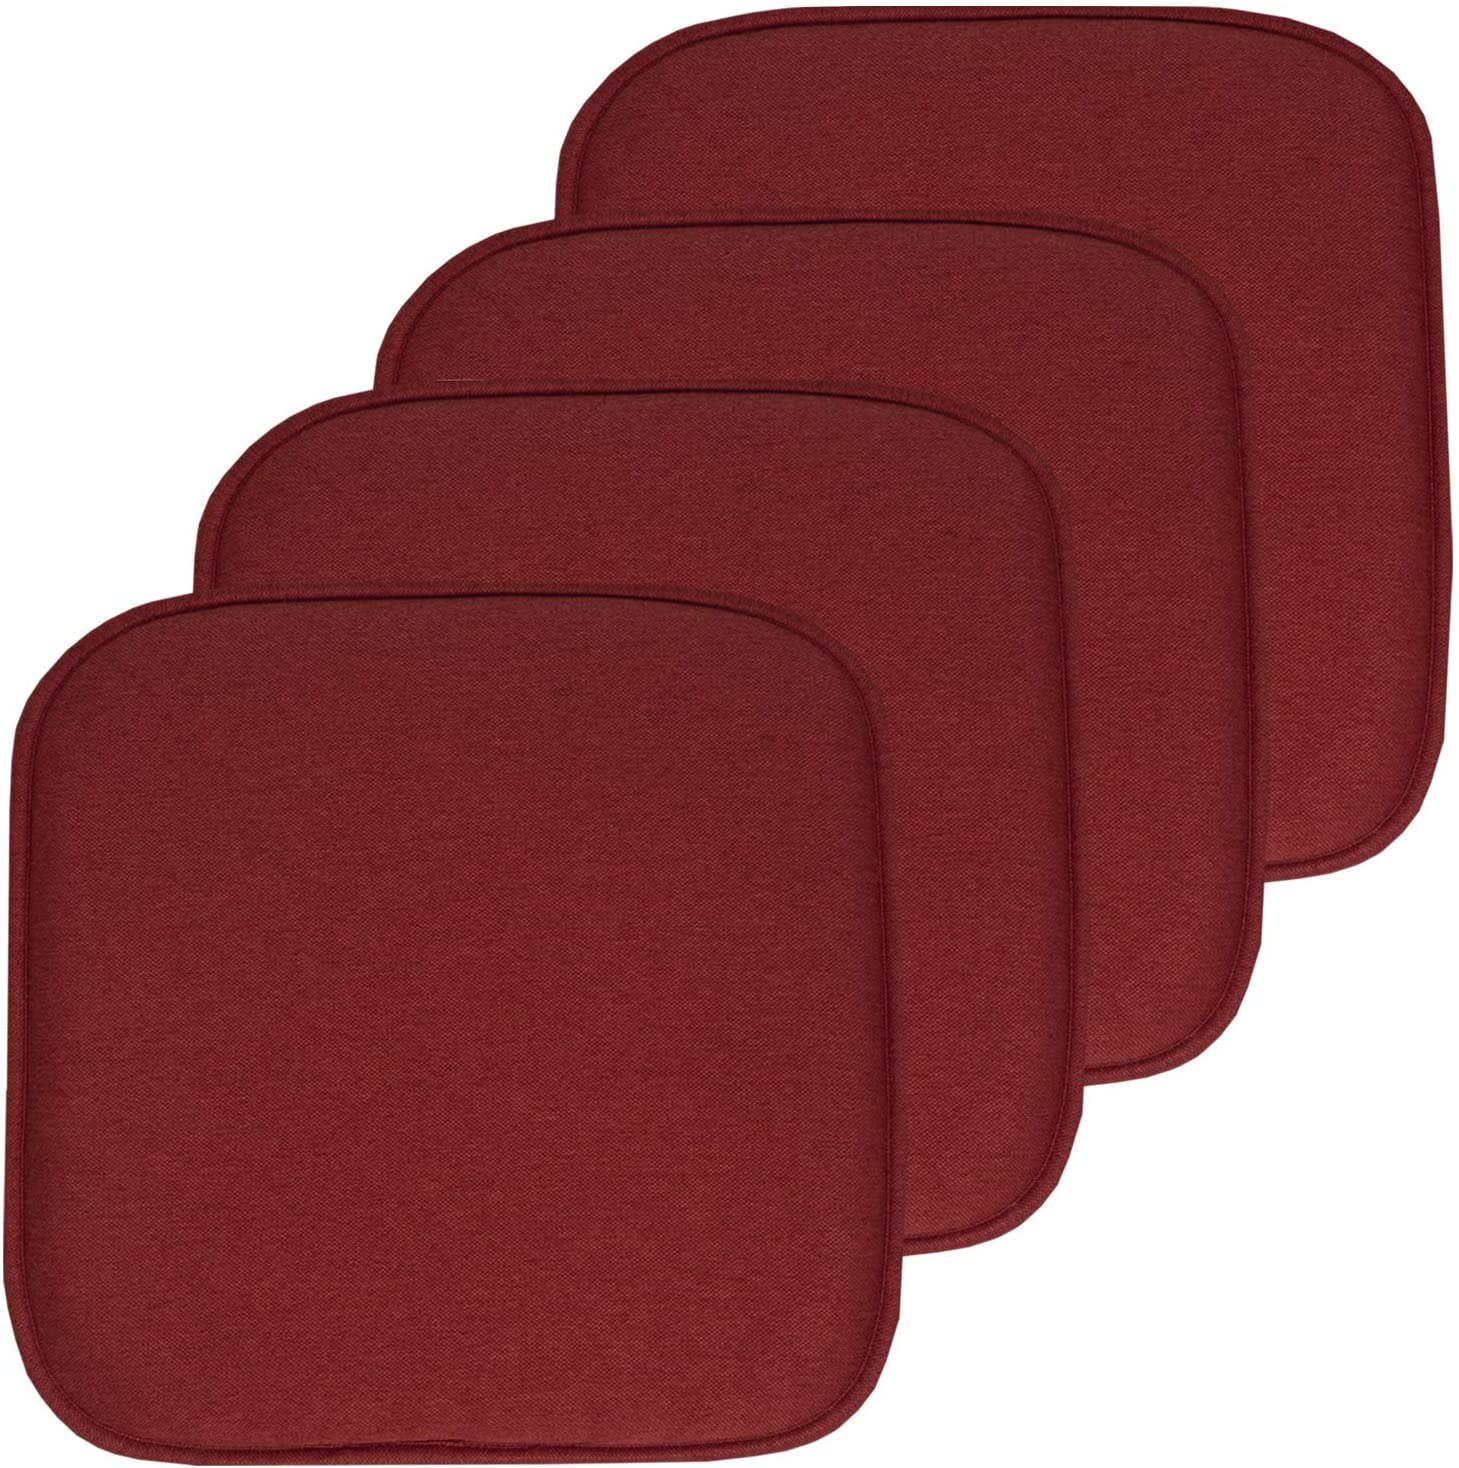 "Sweet Home Collection Chair Cushion Memory Foam Pads Honeycomb Pattern Slip Non Skid Rubber Back Rounded Square 16"" x 16"" Seat Cover, 4 Pack, Charlotte Wine"